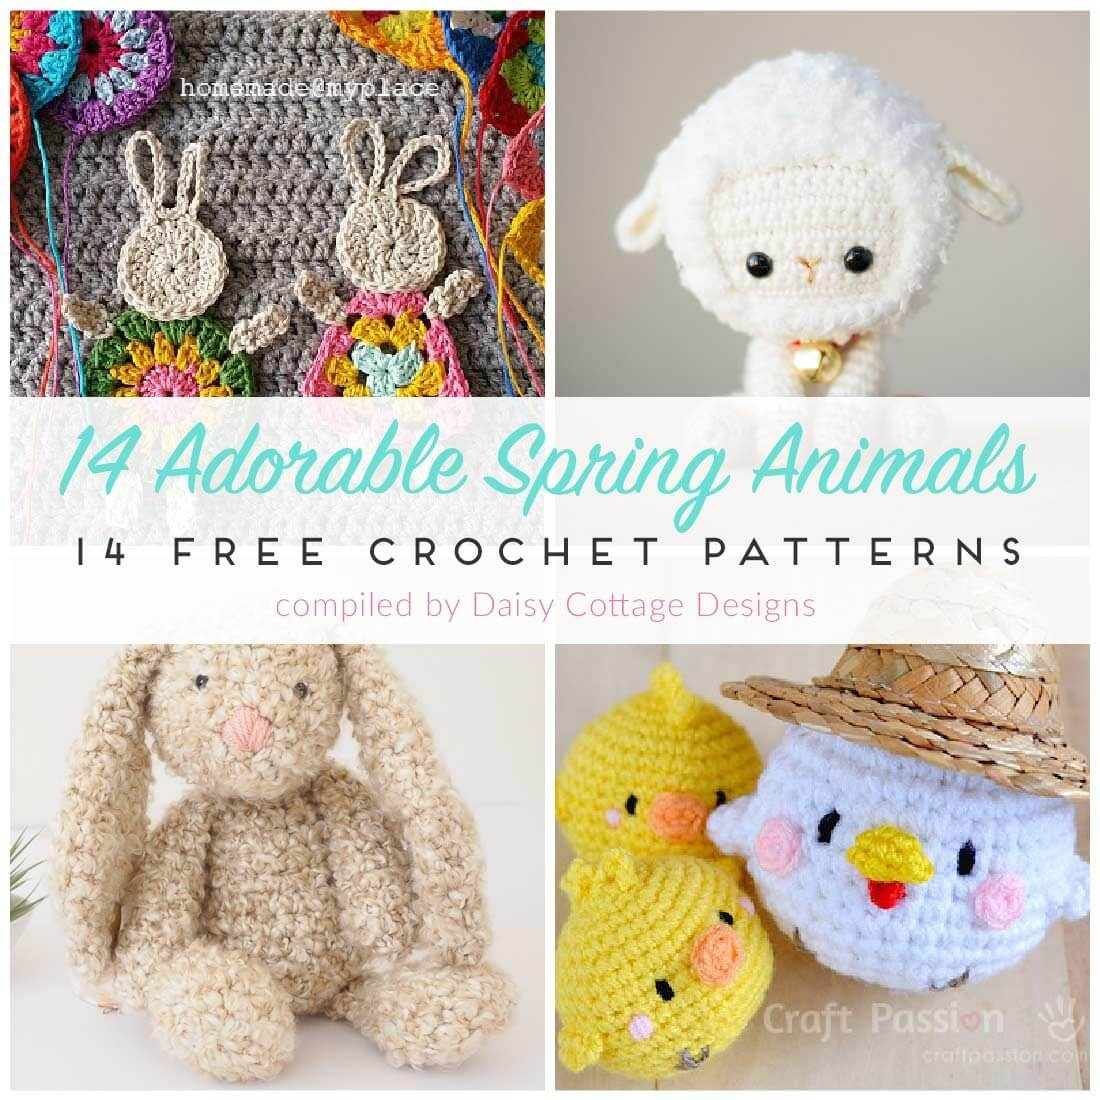 Free Crochet Patterns For Spring - Daisy Cottage Designs - Free Printable Crochet Patterns